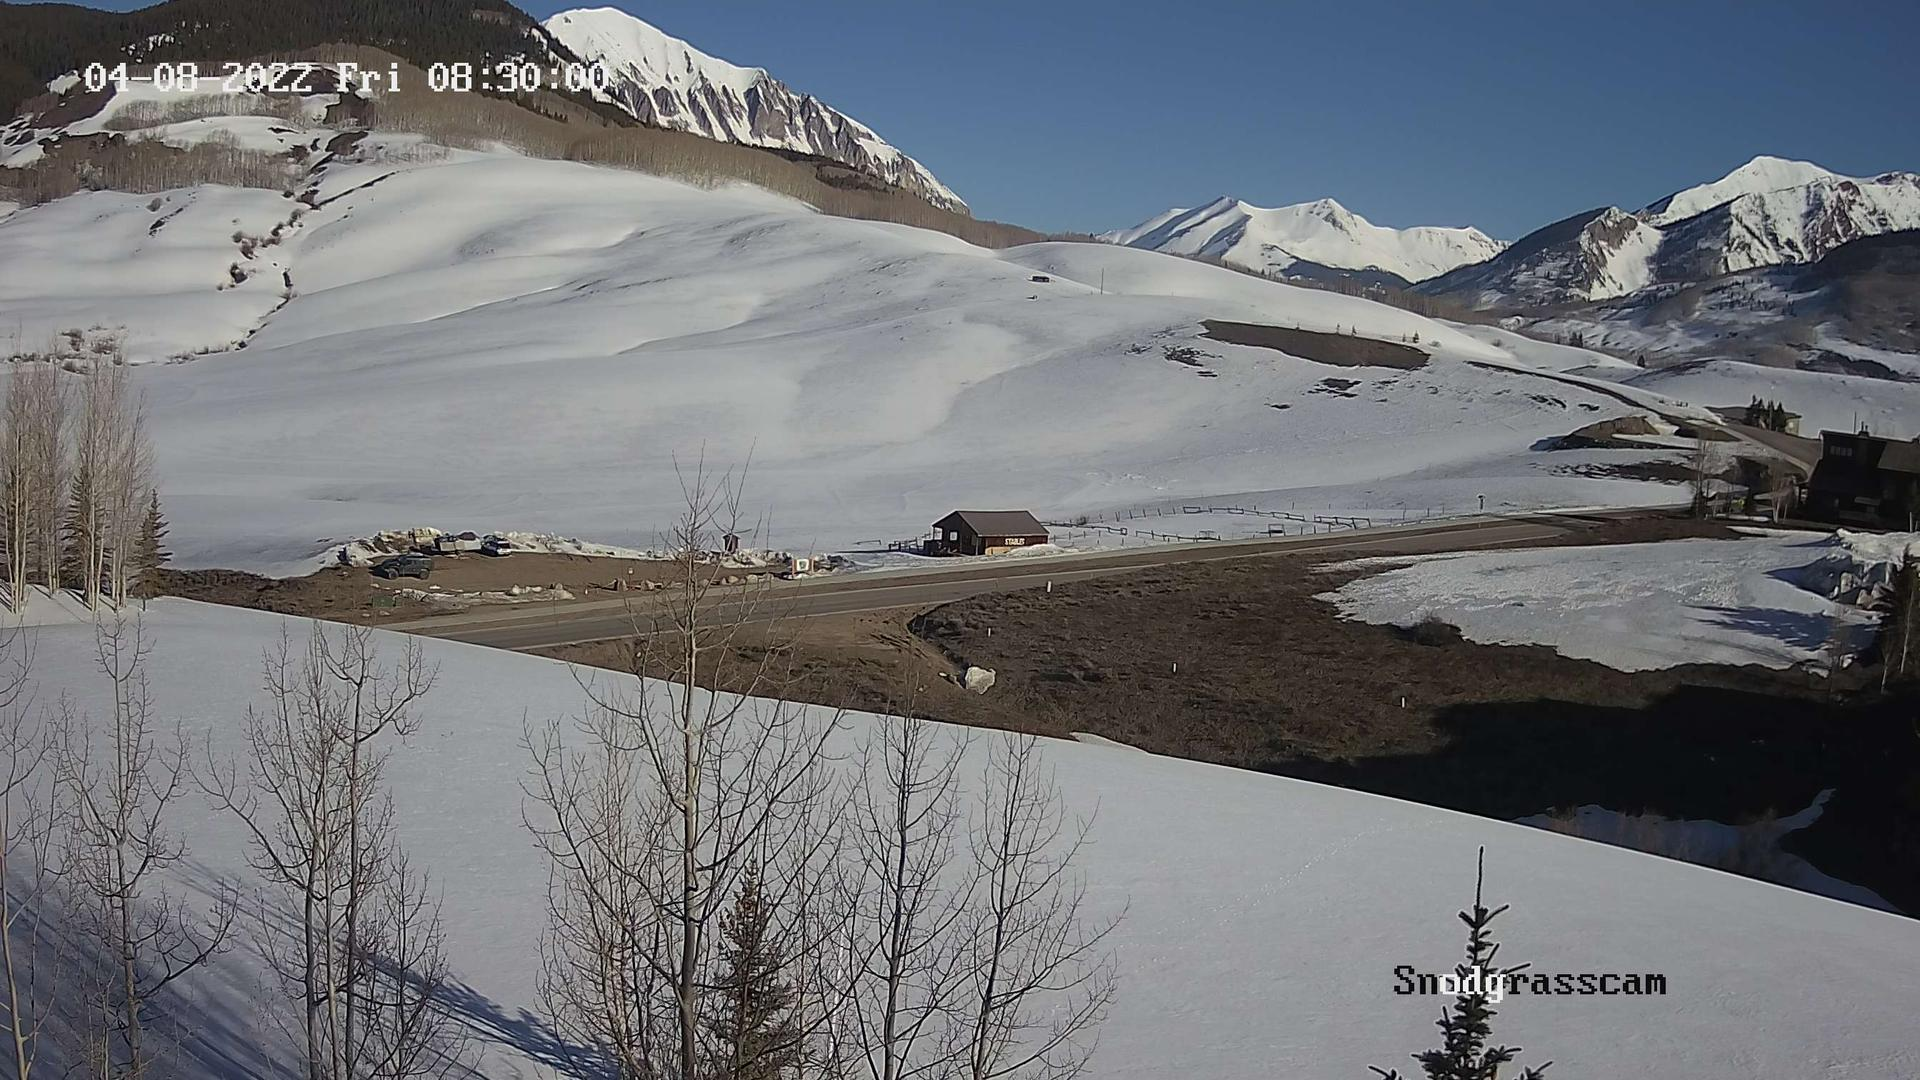 Webcam Mount Crested Butte › North: Snodgrass Mountain